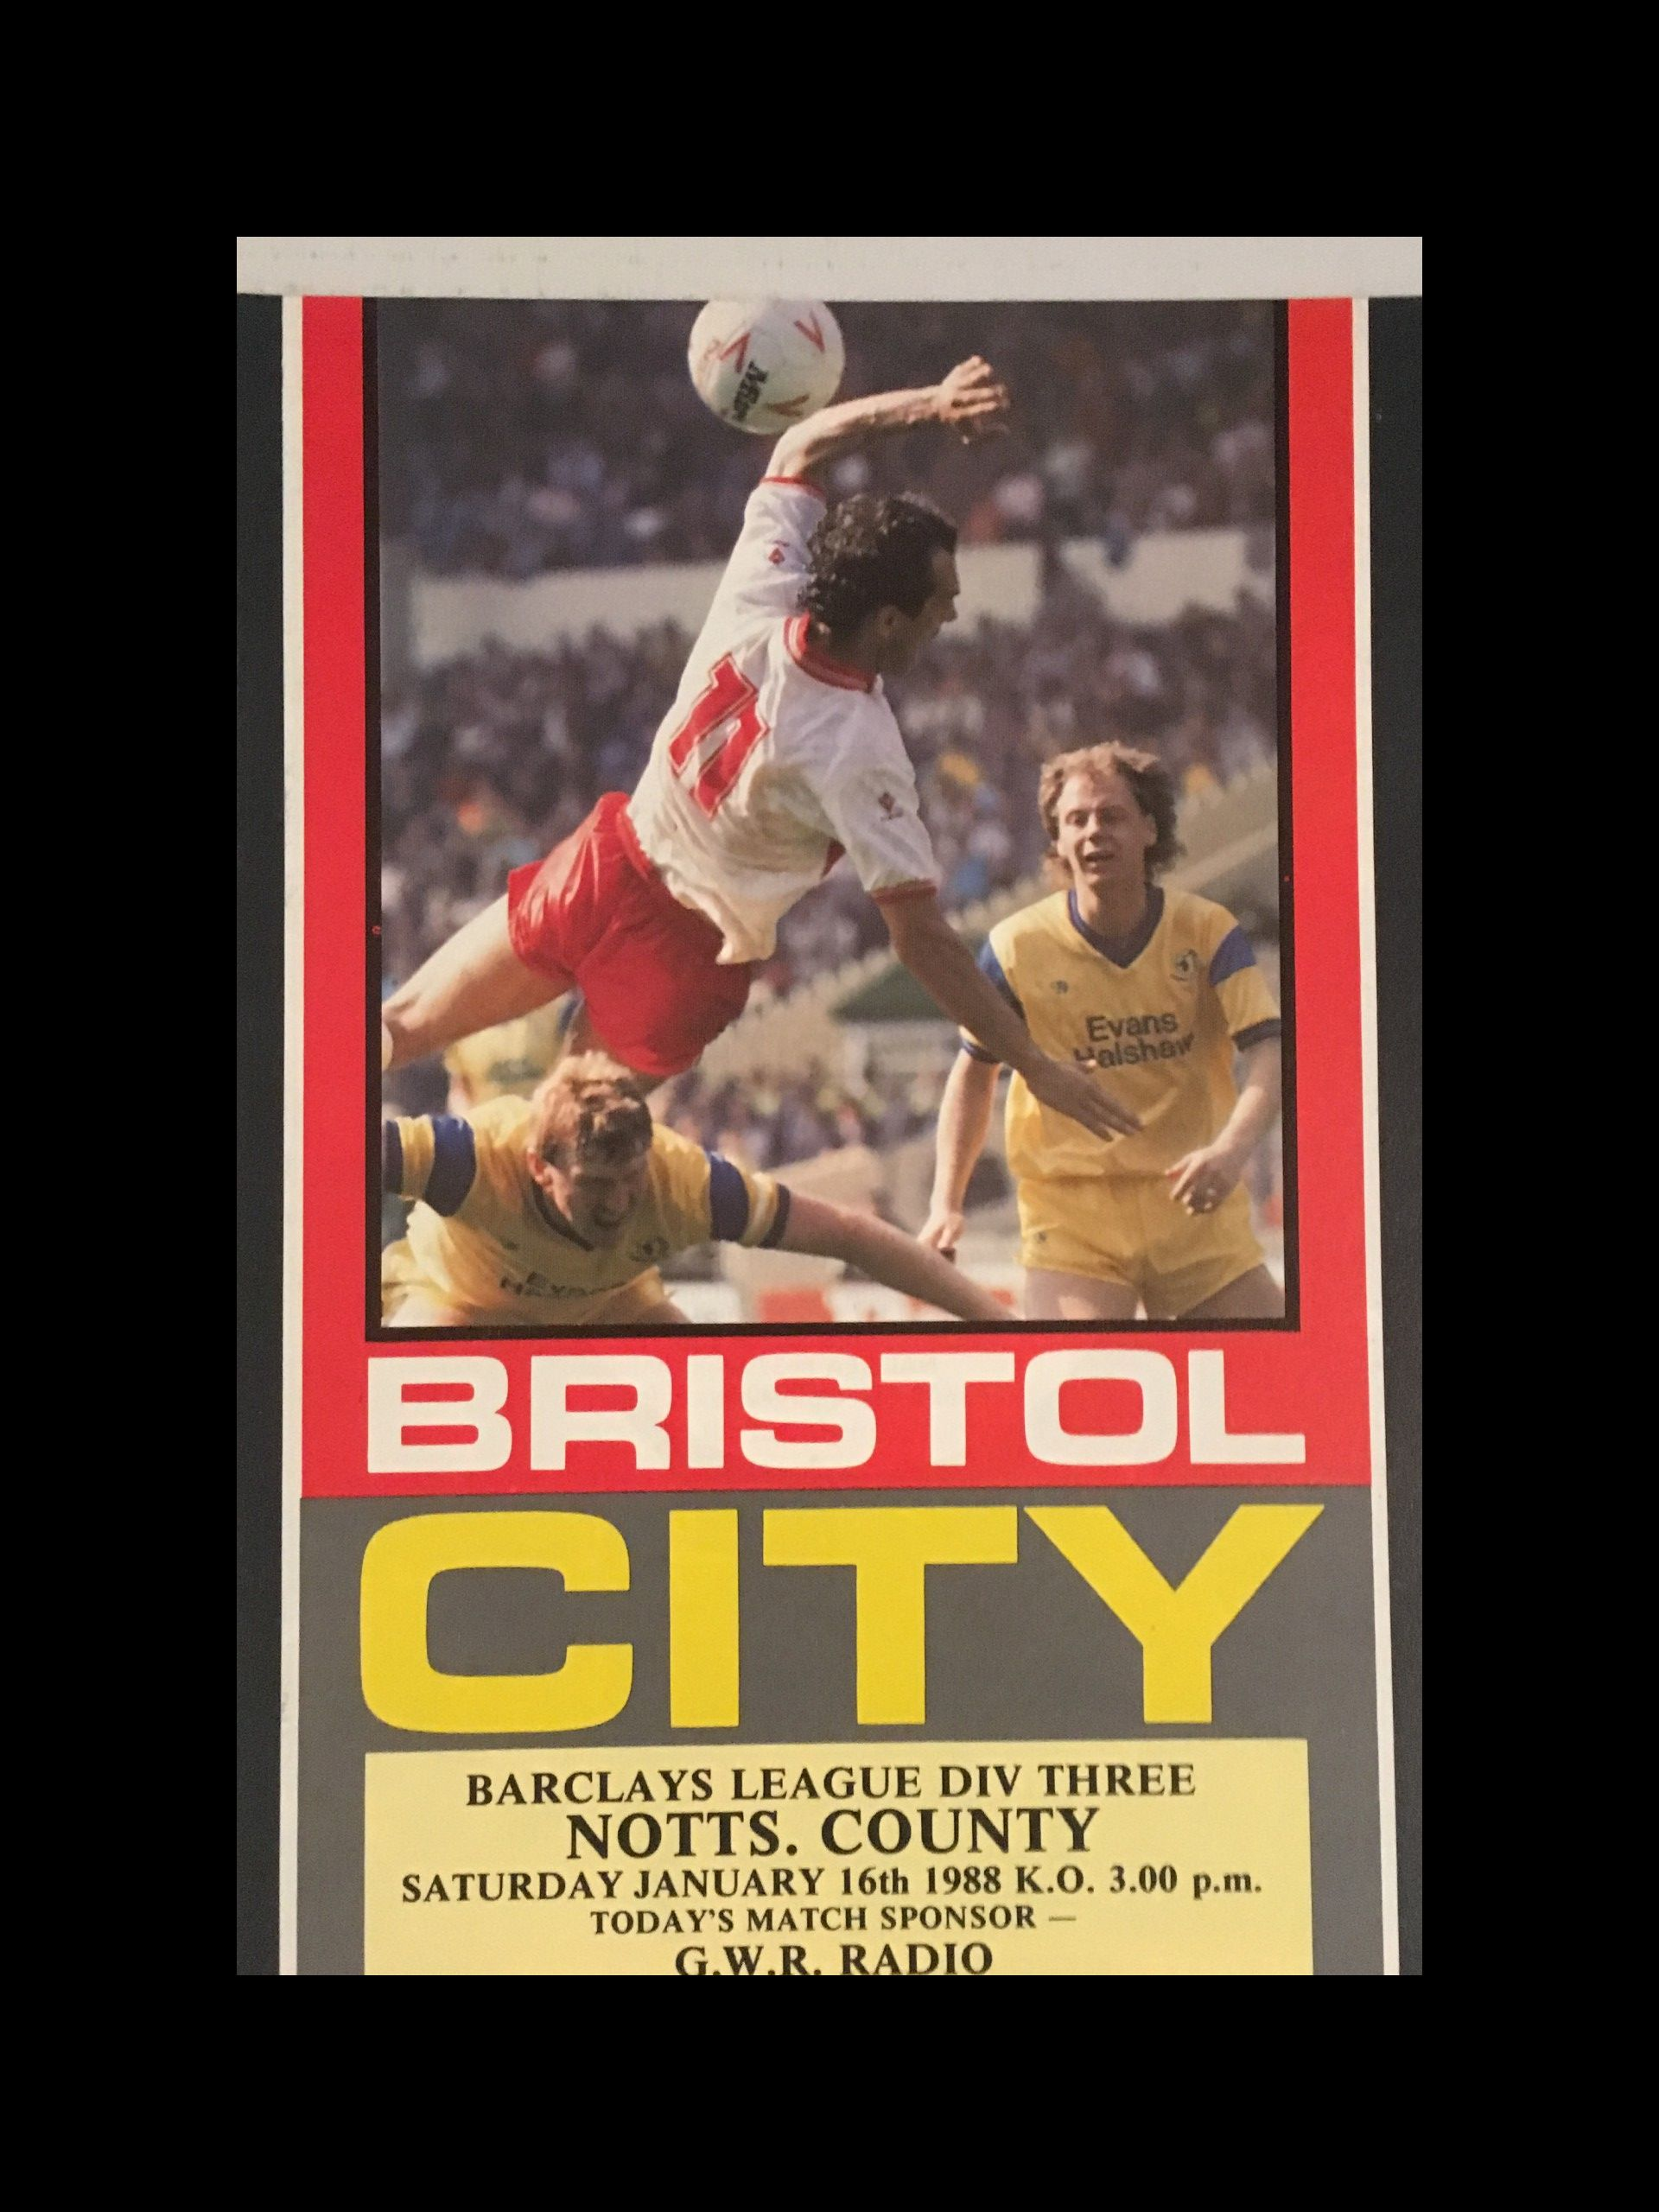 Bristol City v Notts County 16-01-1988 Programme